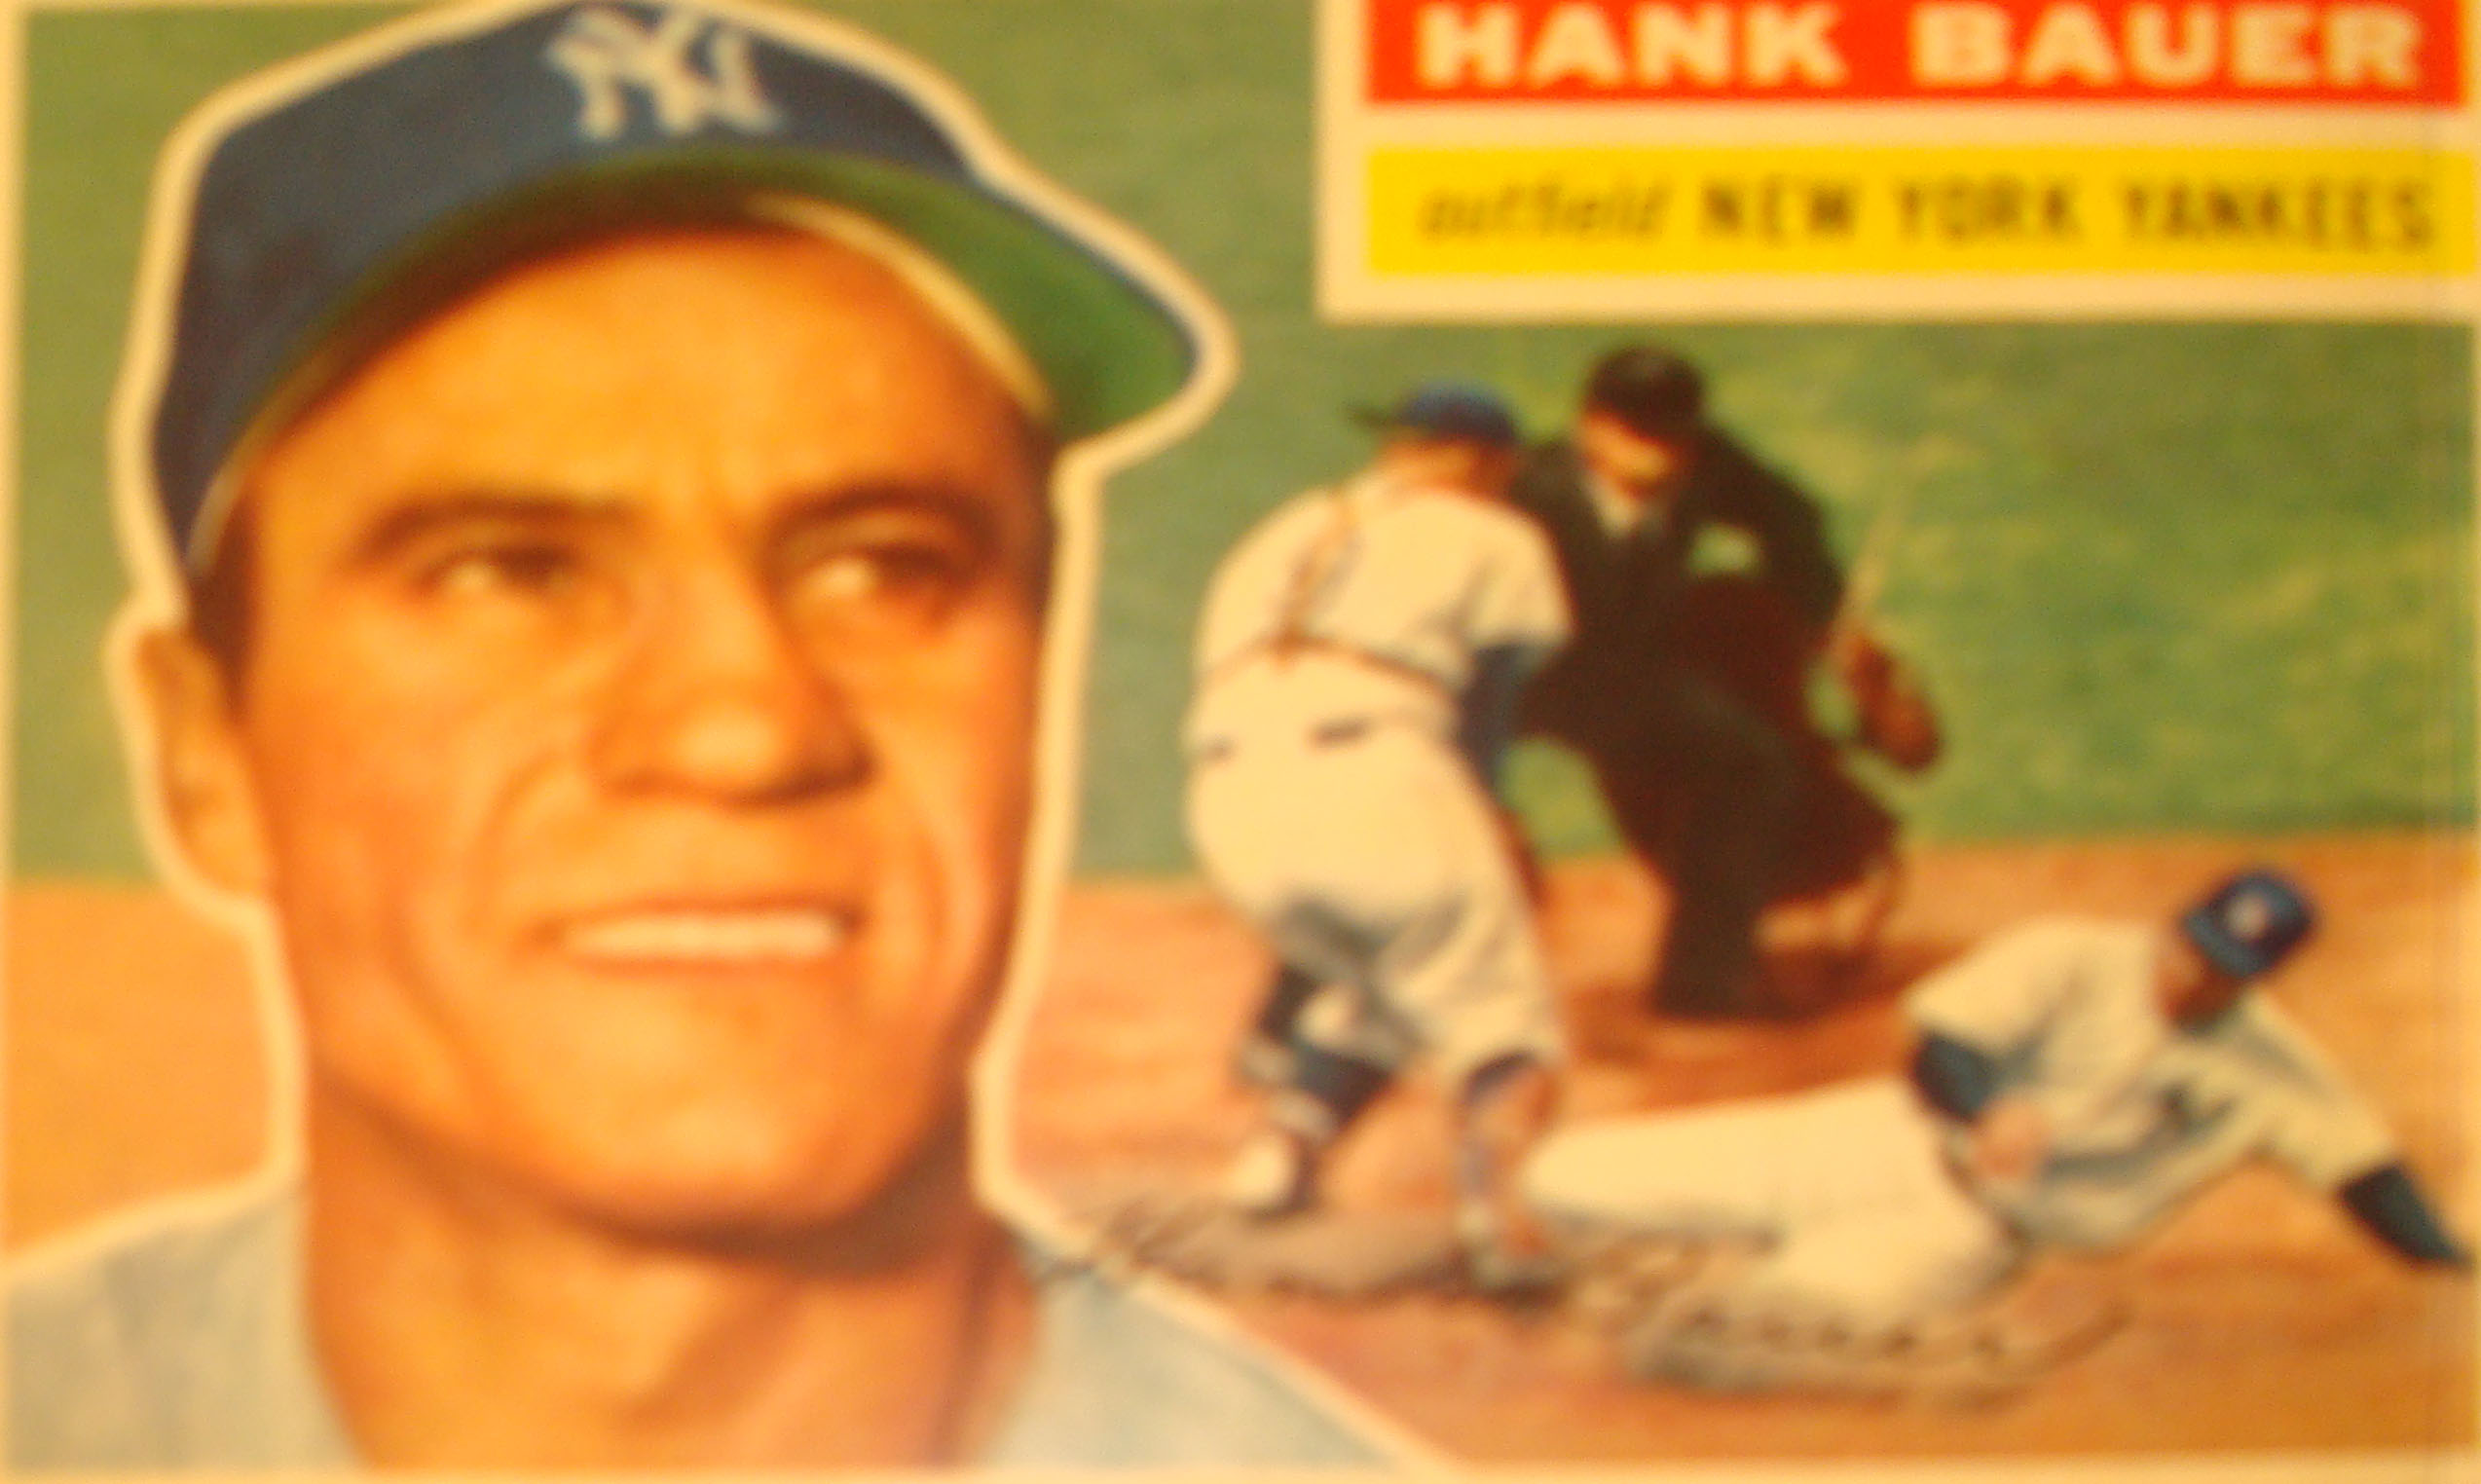 New York Yankee Highlights From Early 1950s Featuring Joe